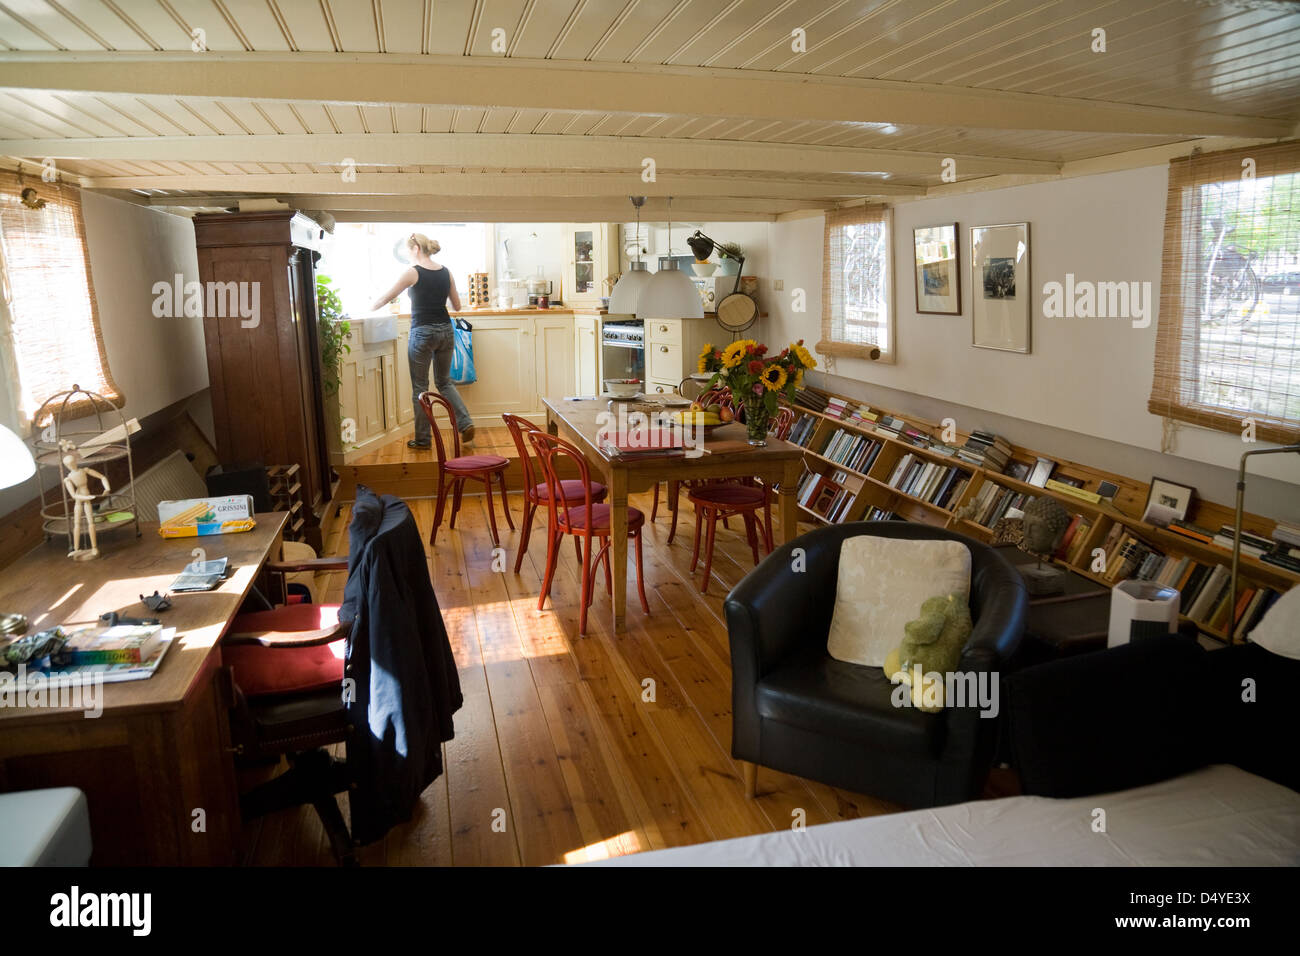 Delicieux Amsterdam, Netherlands, The Interior Of A Houseboat   Stock Image